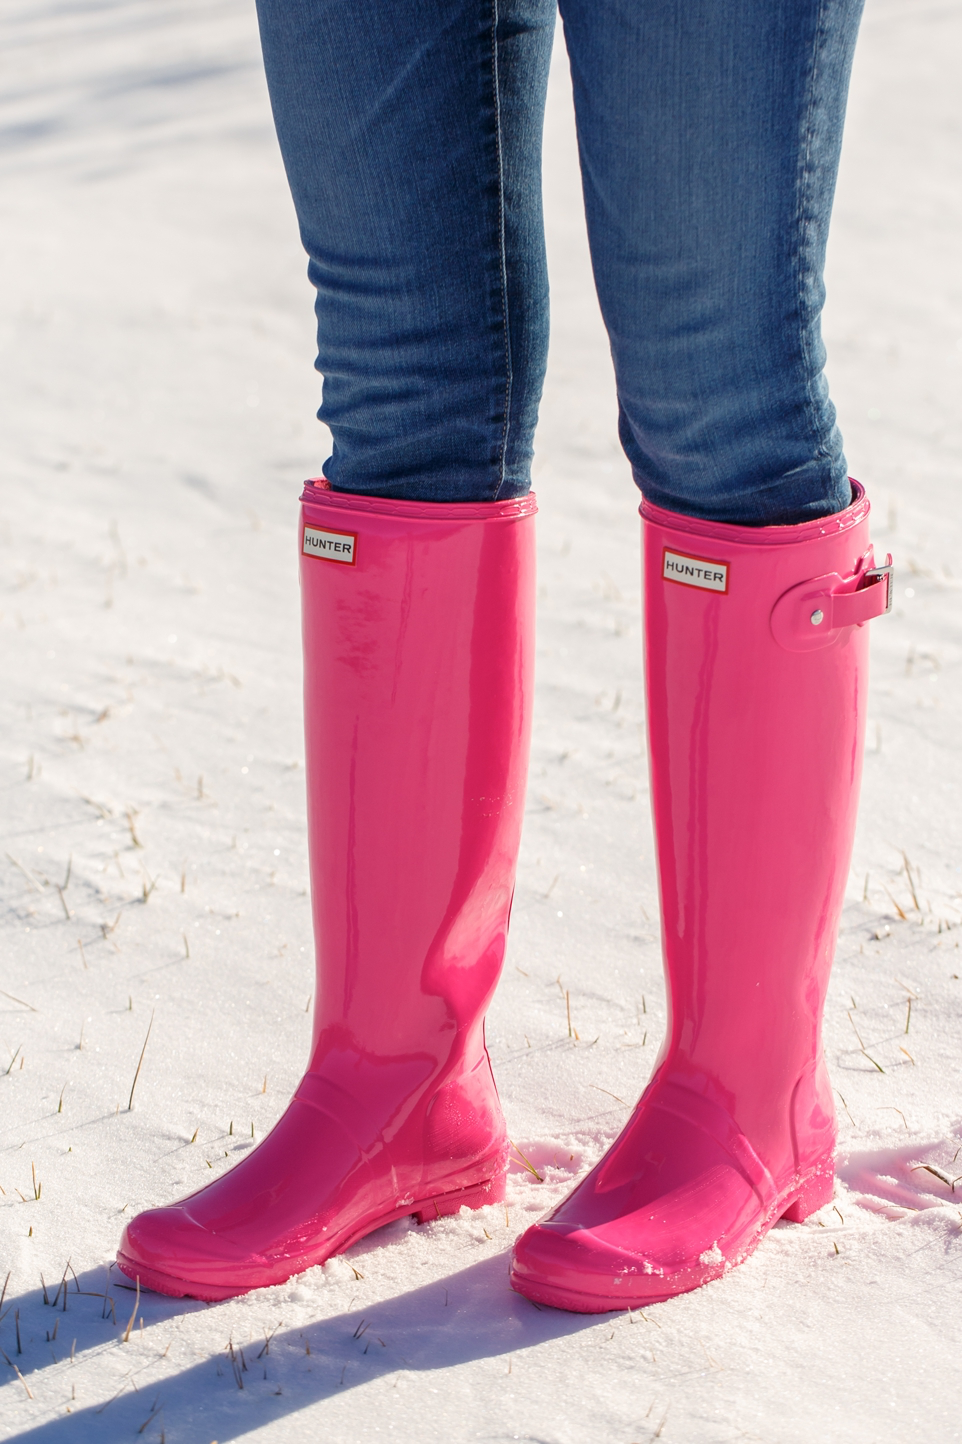 Pink Hunter Boots in Snow